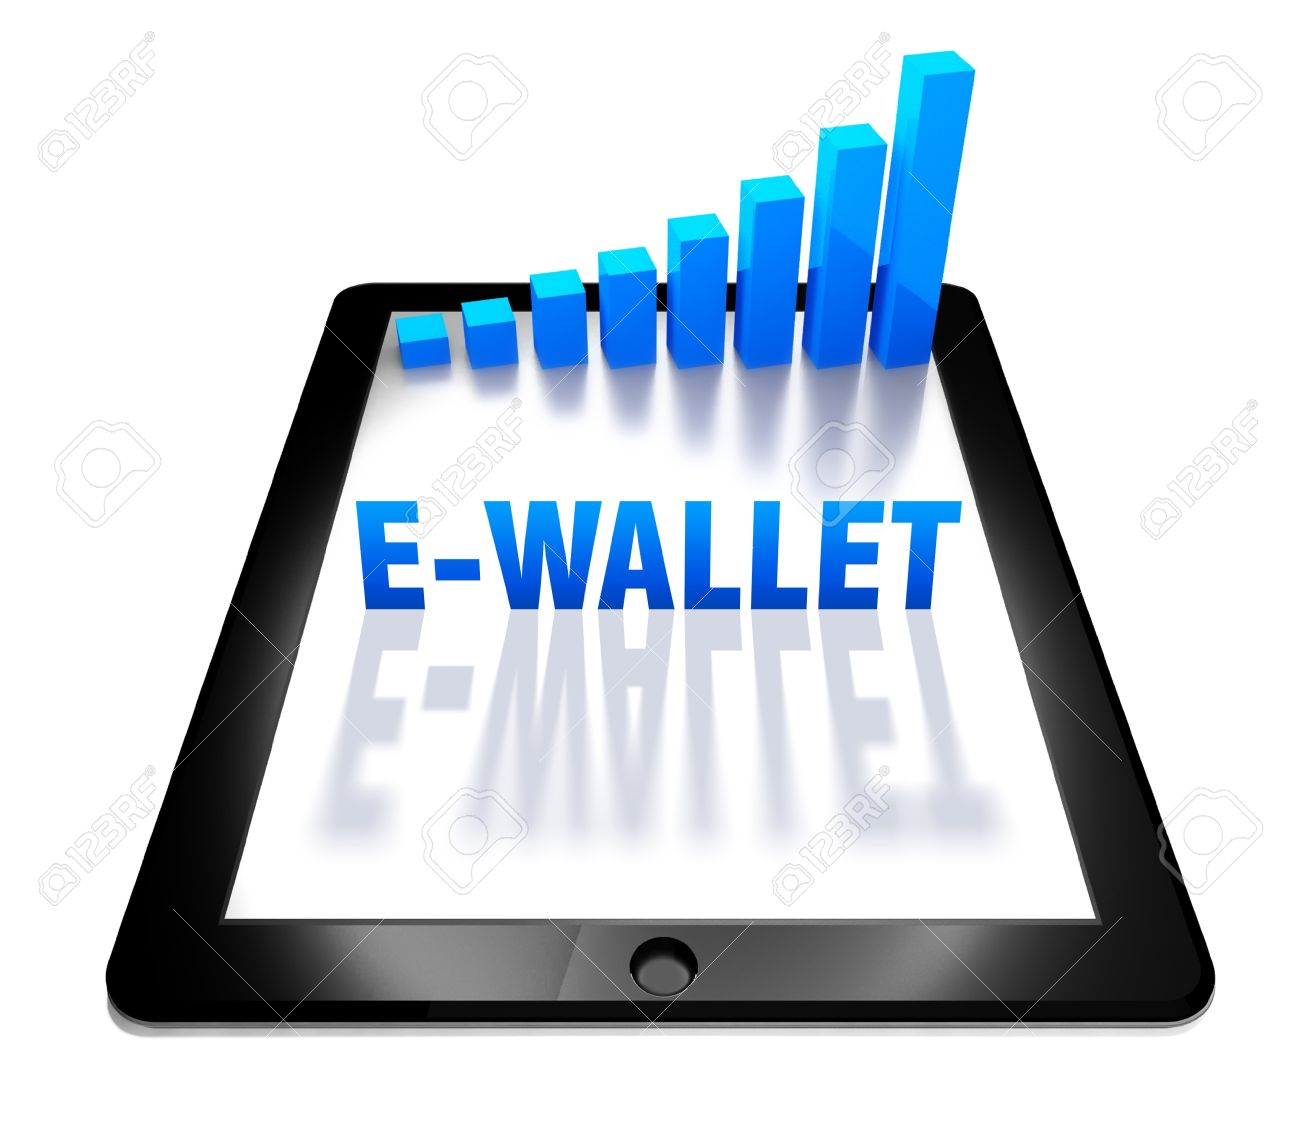 3d graph and e-wallet concept on digital tablet